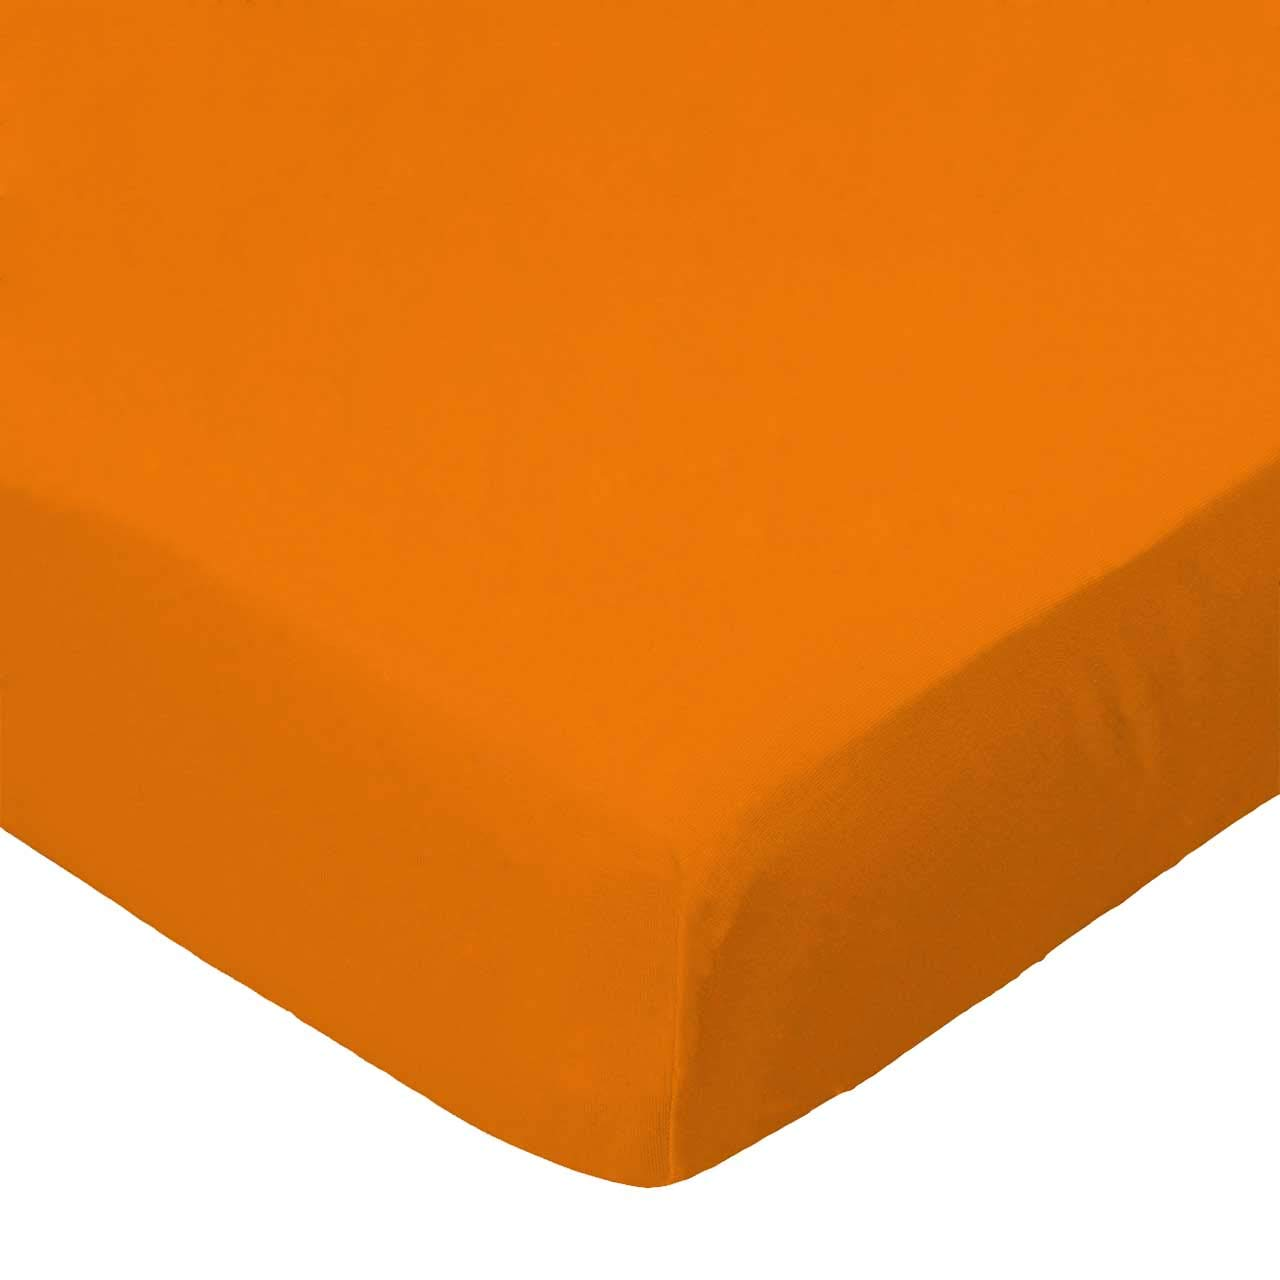 SheetWorld Fitted Crib / Toddler Sheet - Flannel - Orange - Made In USA by sheetworld   B004O8EAGY